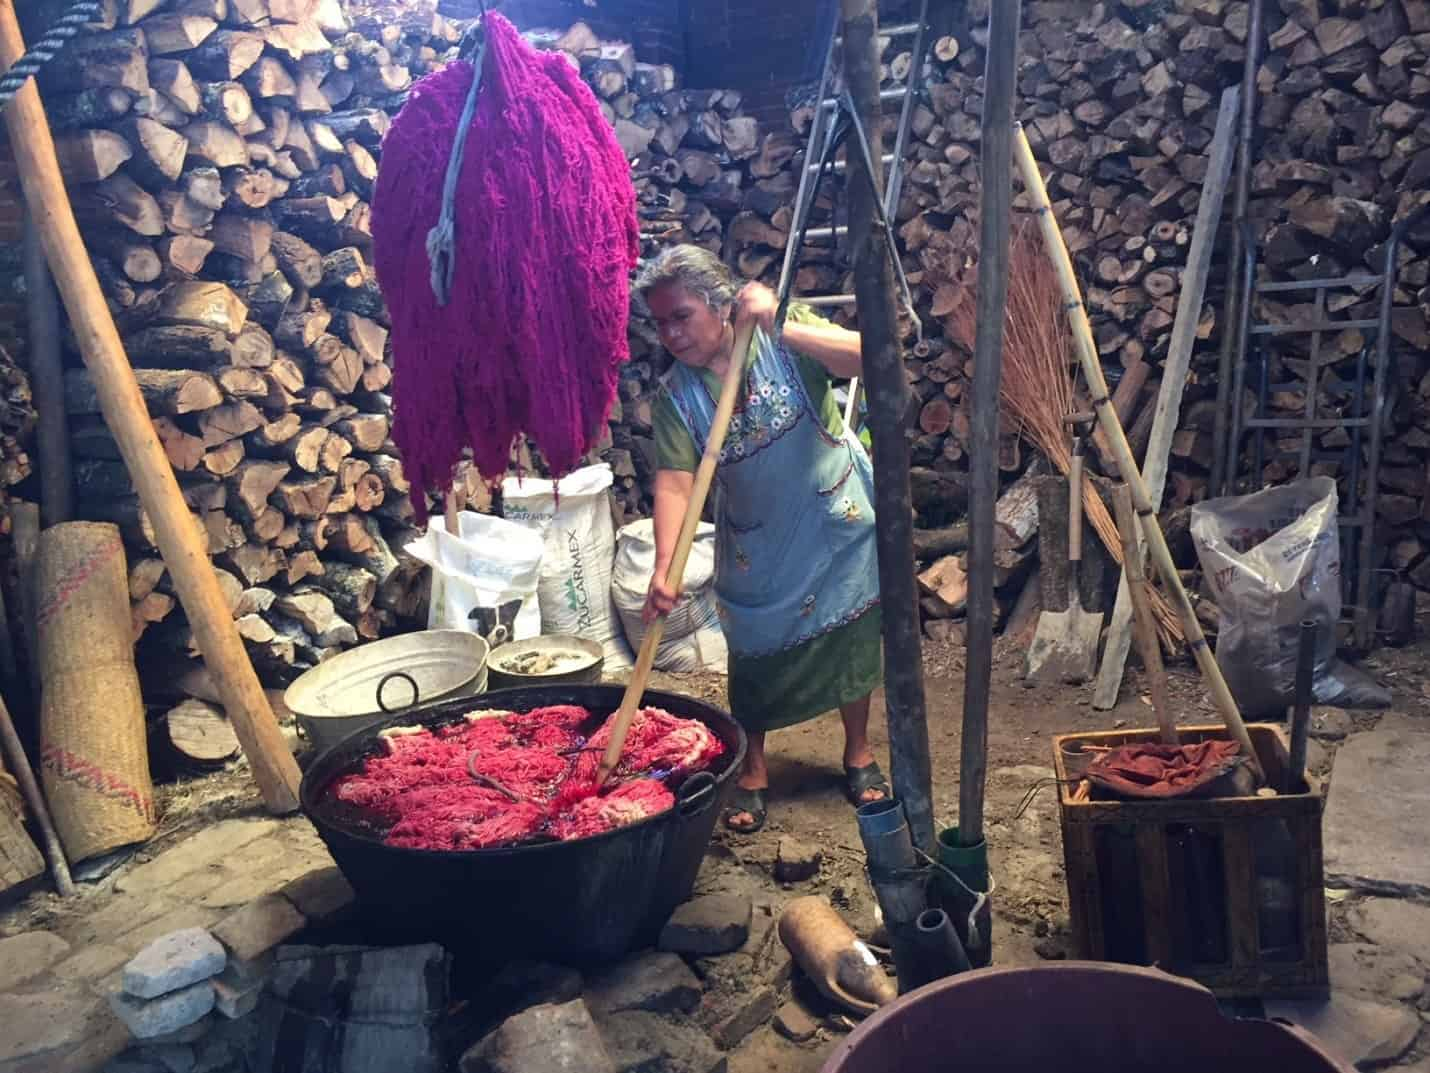 Teotitlan shop owner dyes yarn with natural red dye - Wonders of Oaxaca